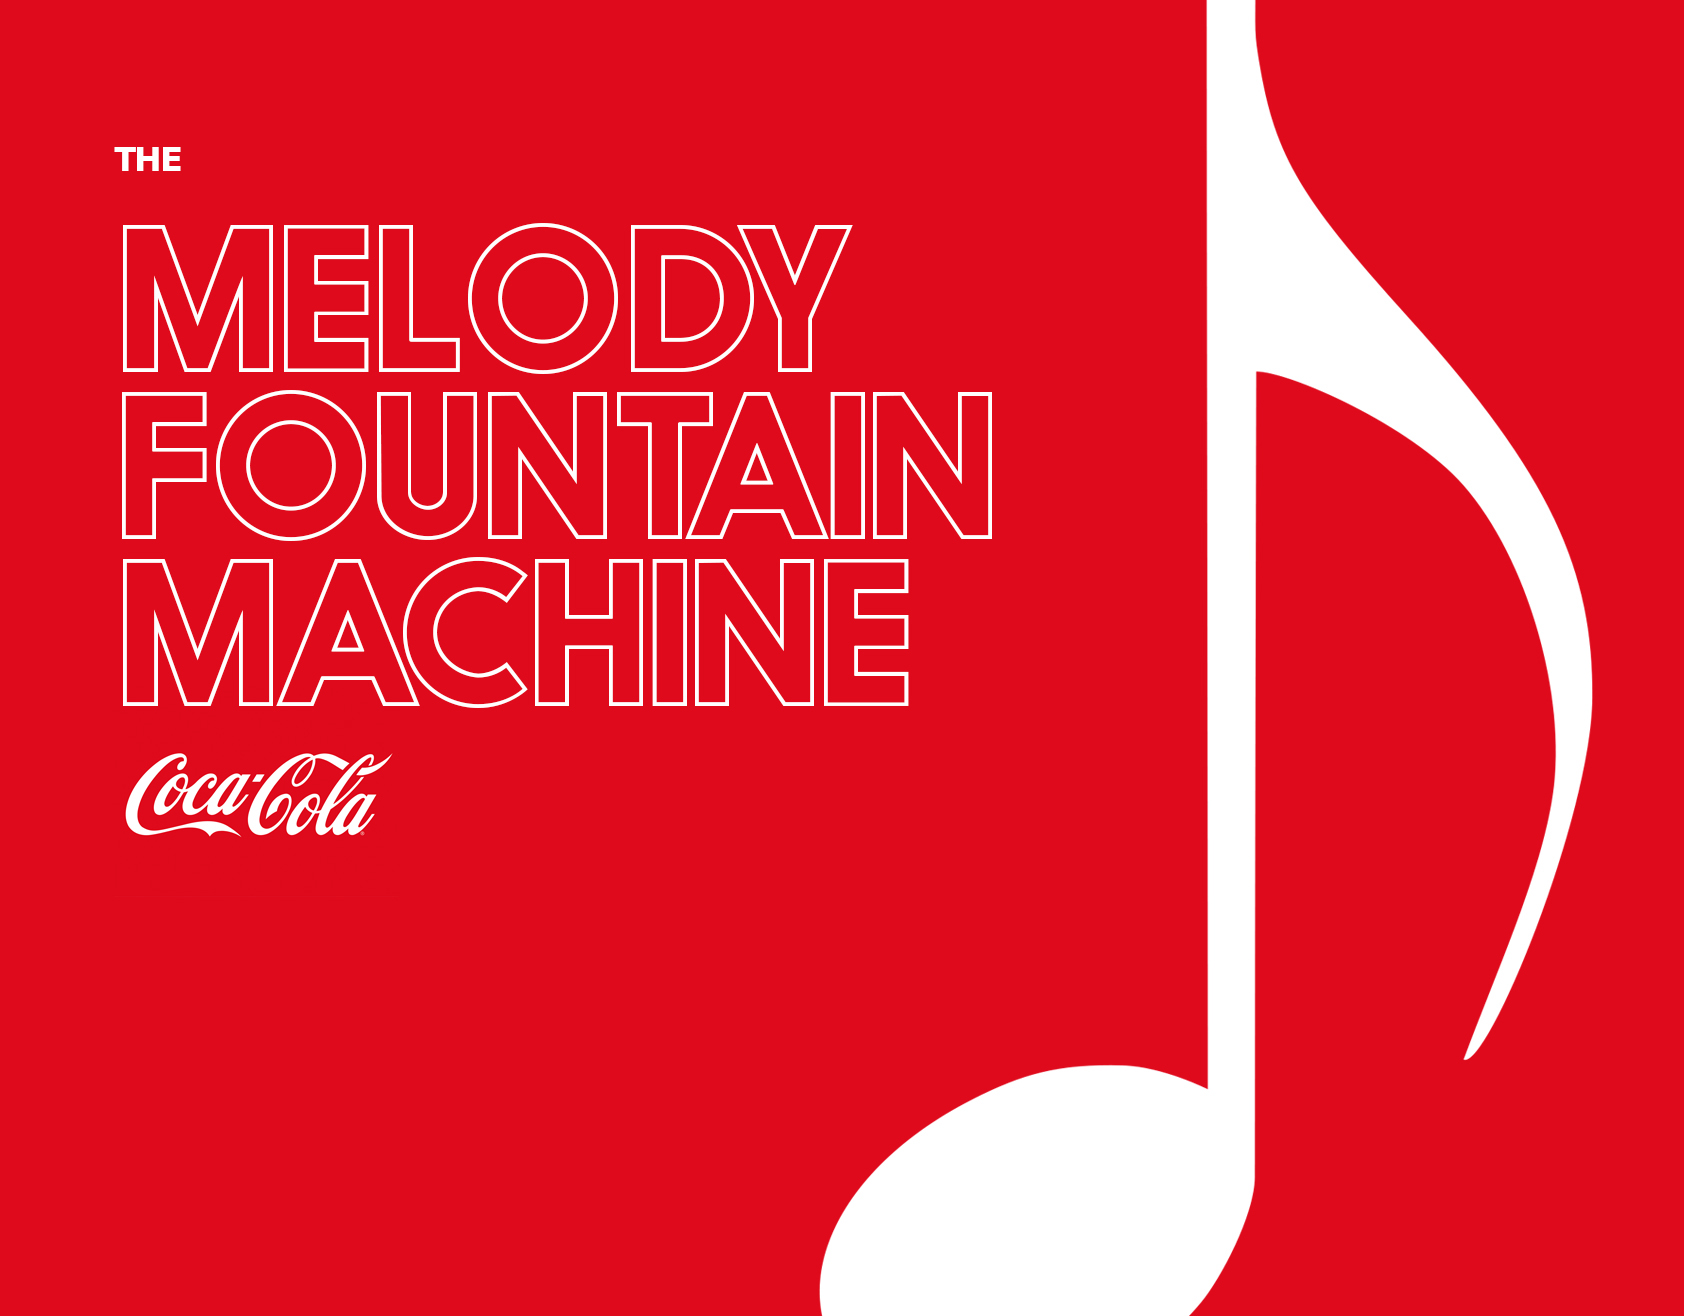 Melody Fountain